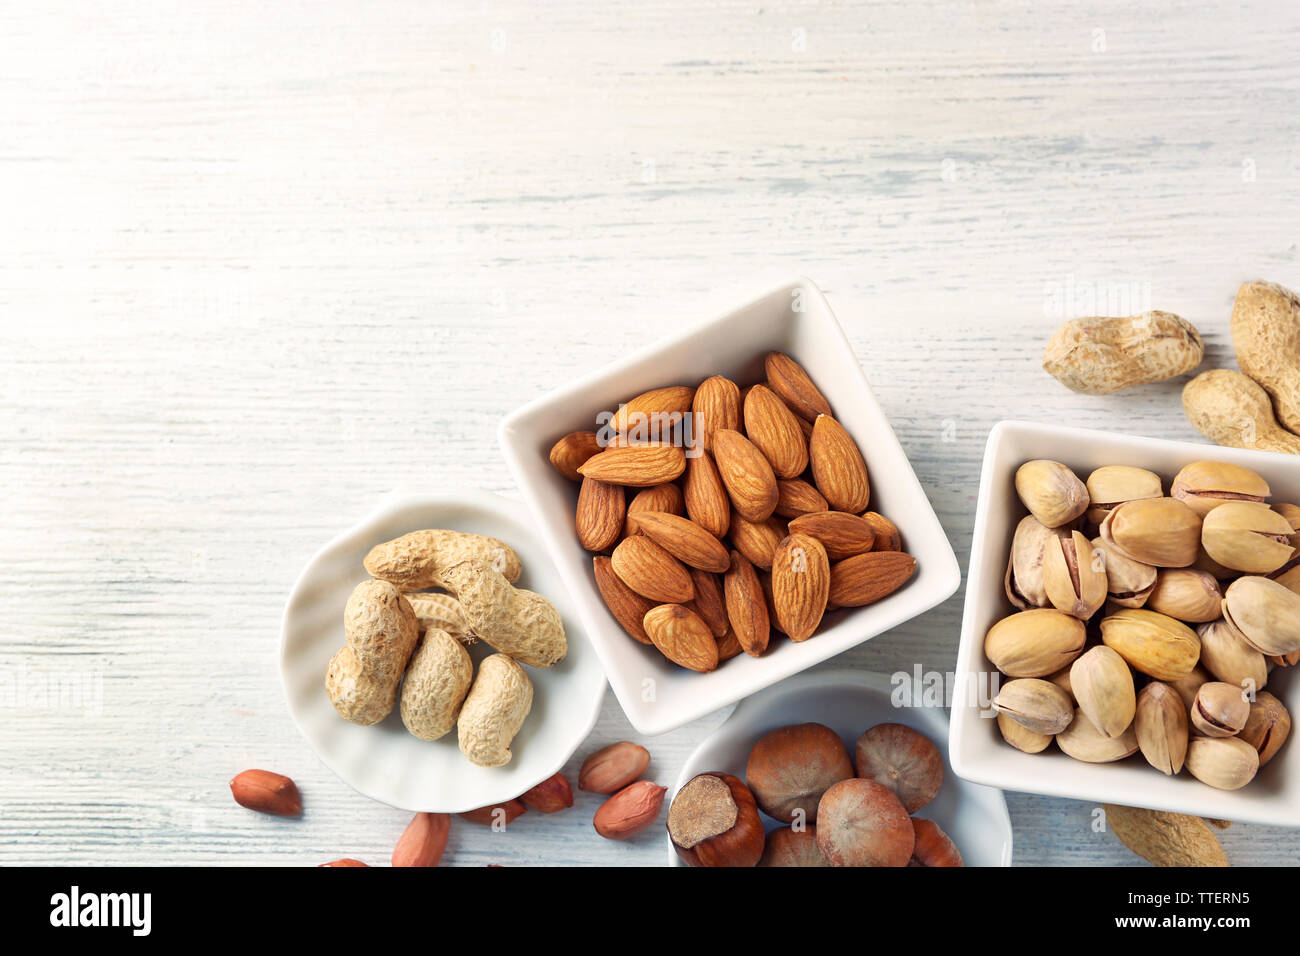 Pistachios, almonds, hazelnuts, peanuts and walnut kernels in the ceramic bowls, on white wooden backgrounds Stock Photo